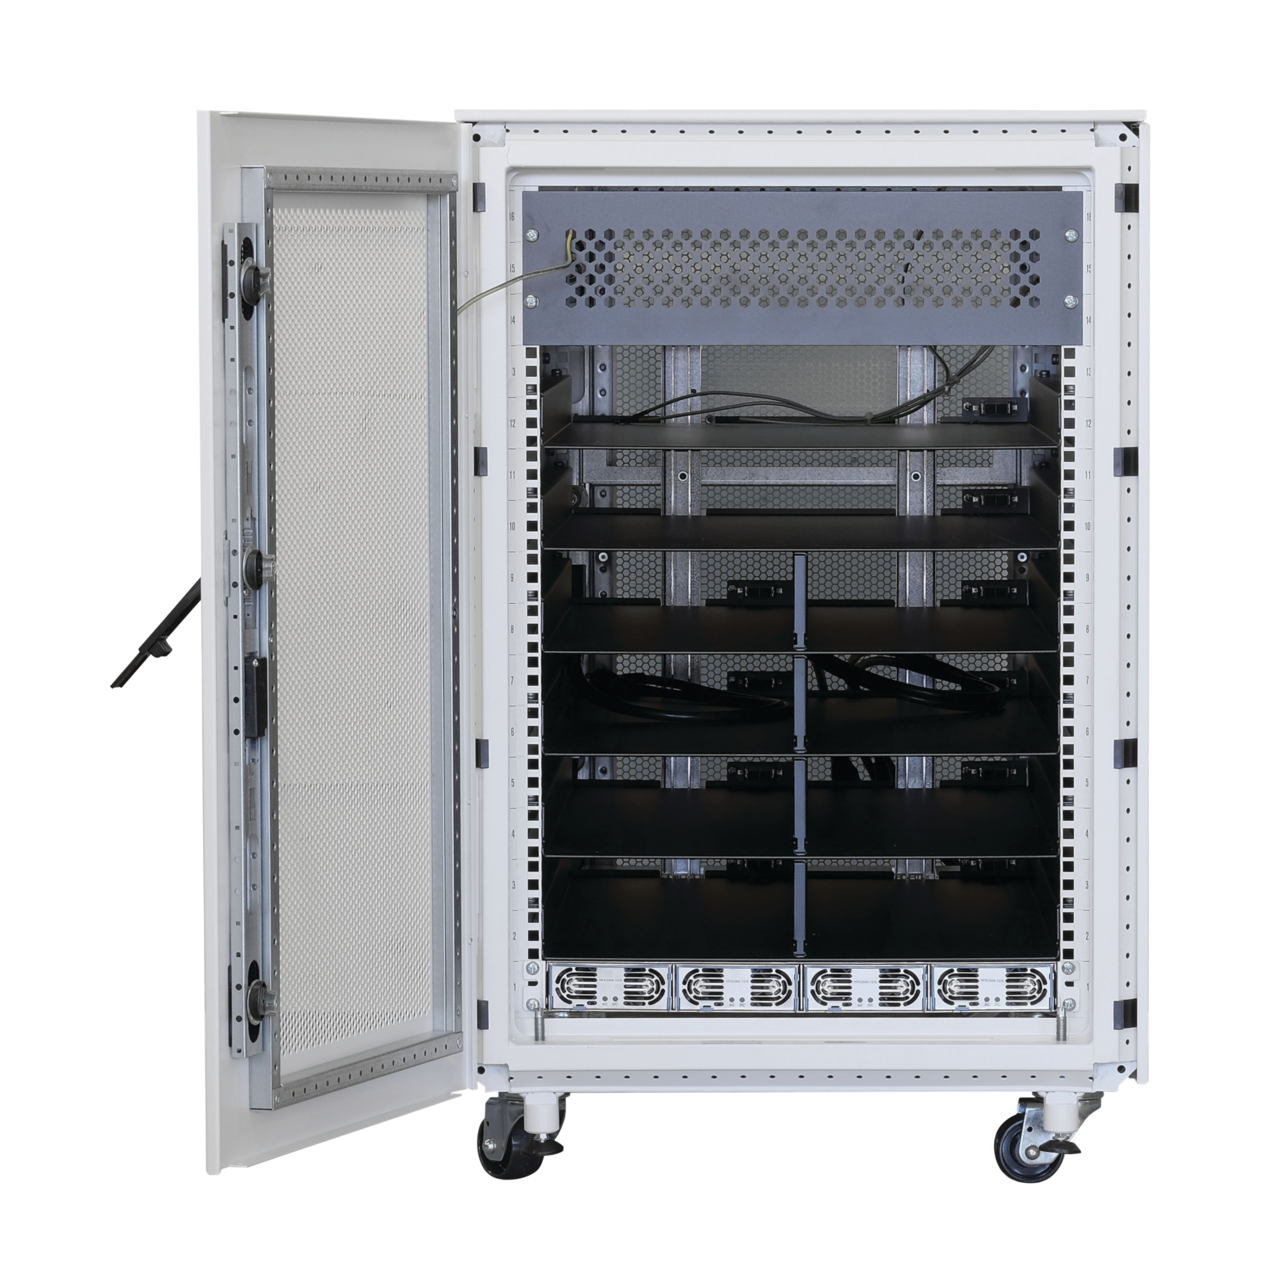 Image for ServCite Rack, 16 U from Schroff - North America